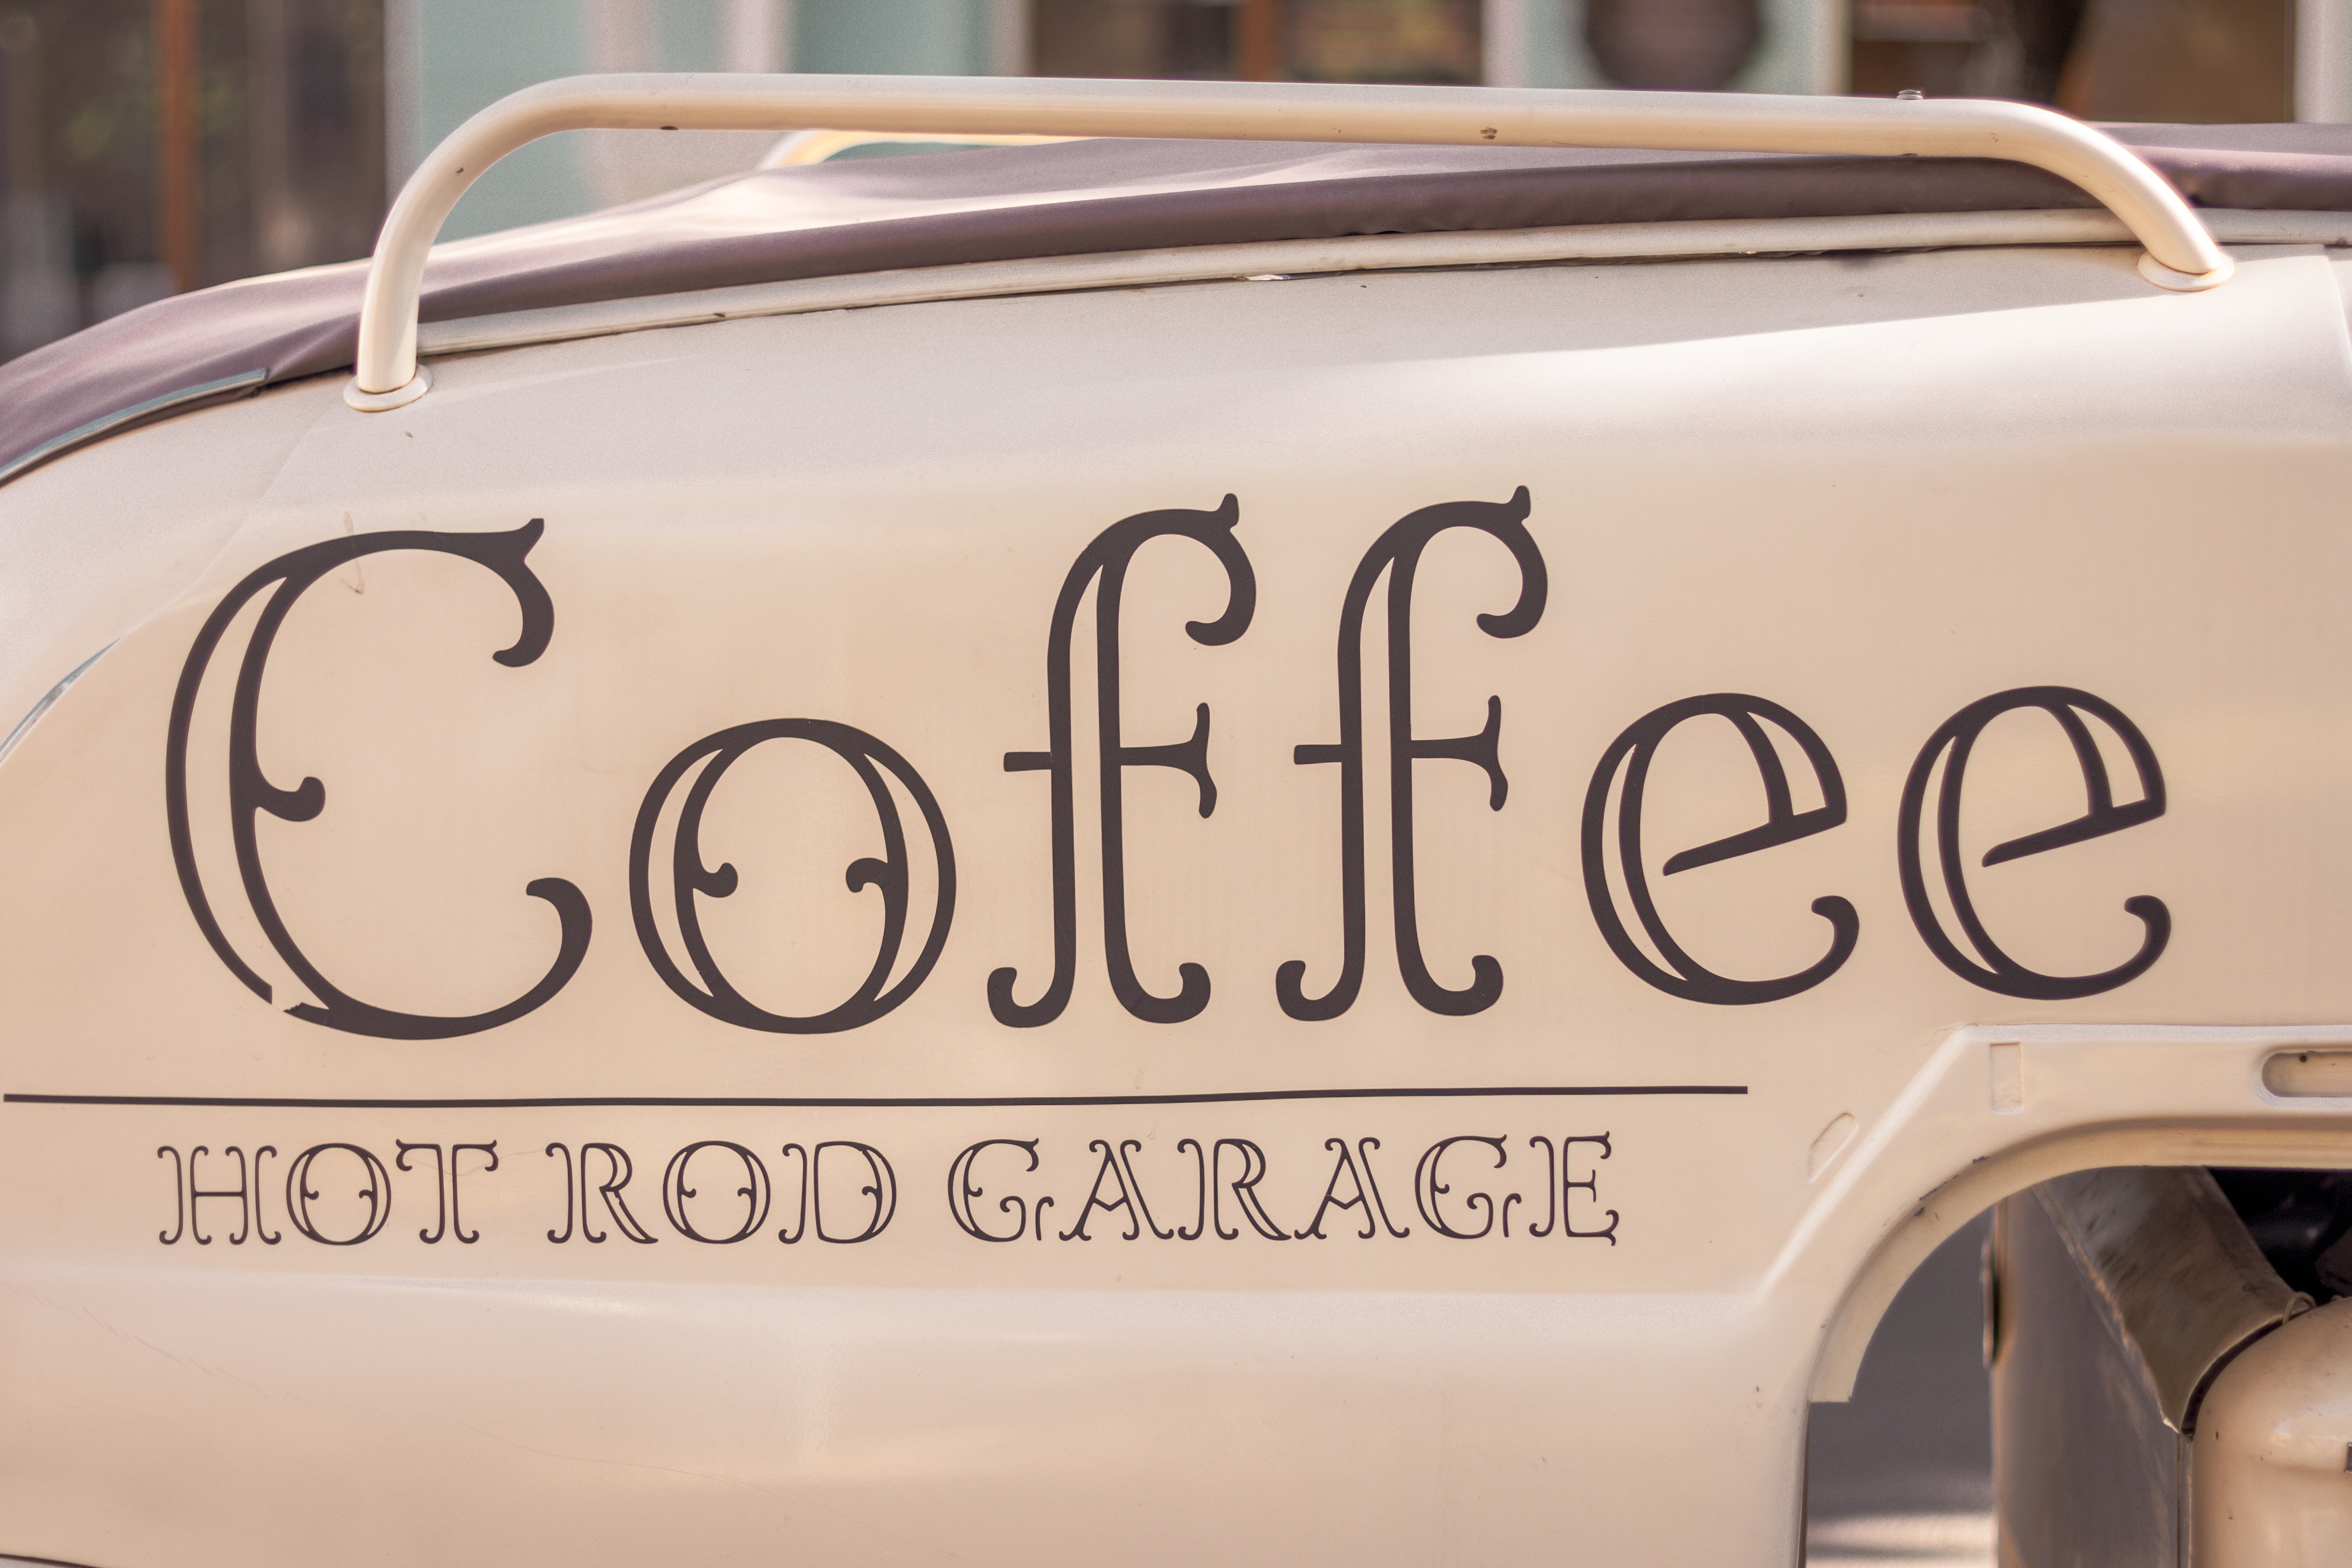 Coffee hot rod garage car